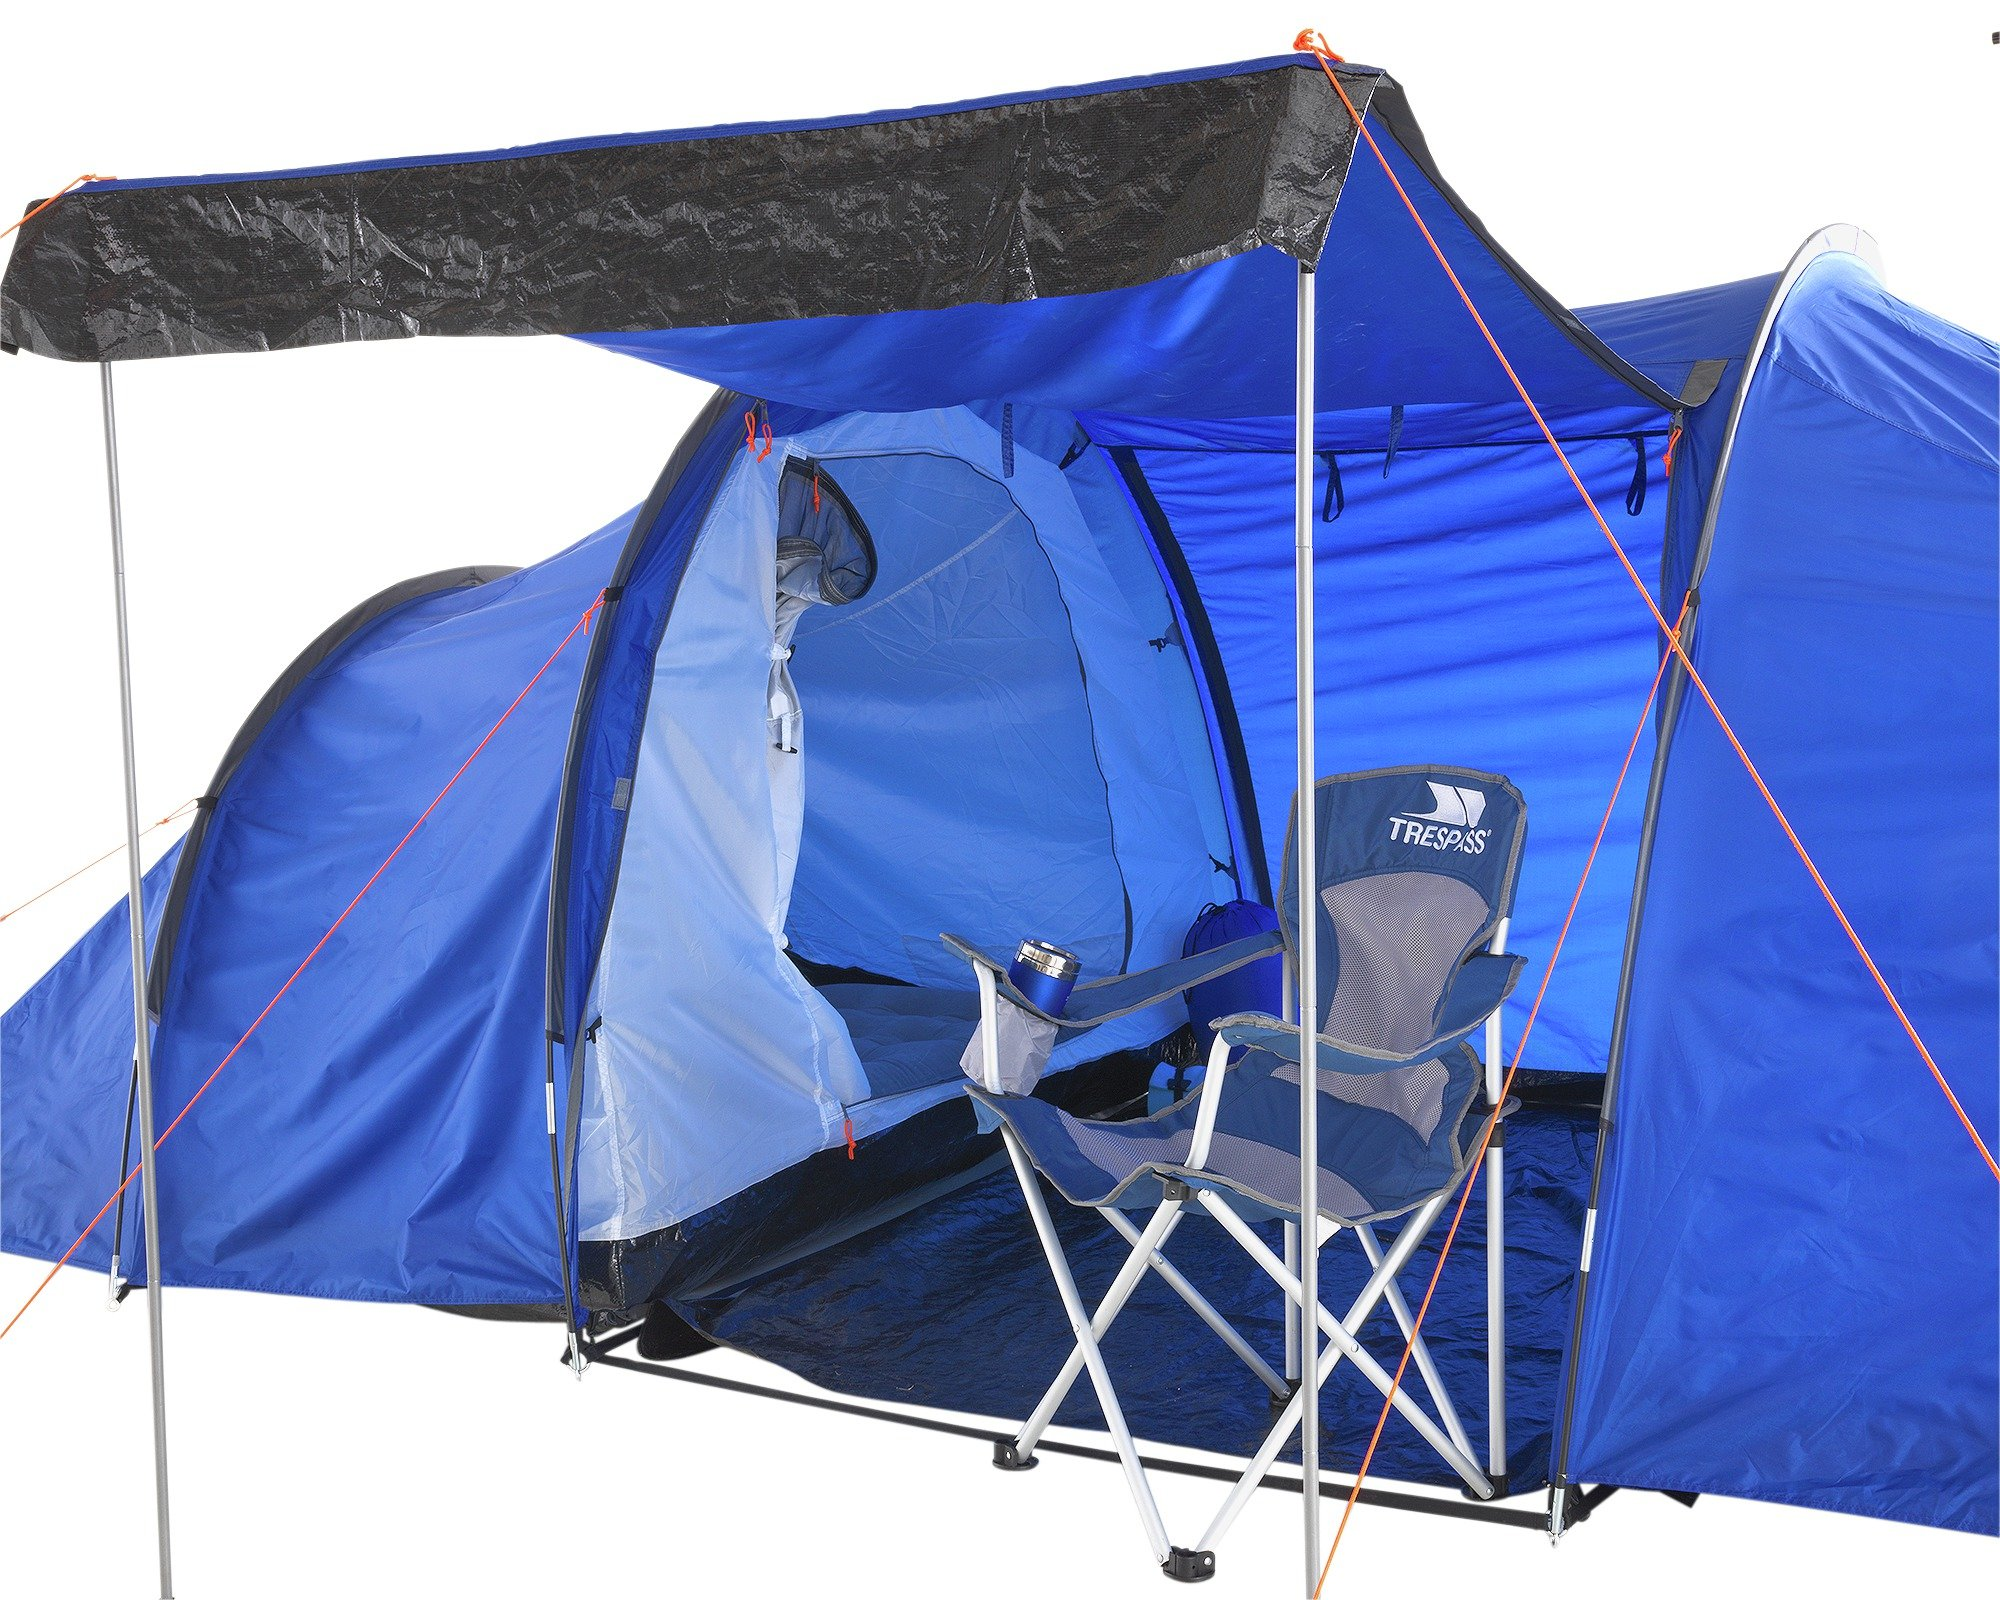 NEW BRAND ProAction 6 Man 2 Room Tent Perfect For A Group Or Large Family Going  sc 1 st  eBay & NEW BRAND ProAction 6 Man 2 Room Tent Perfect For A Group Or Large ...